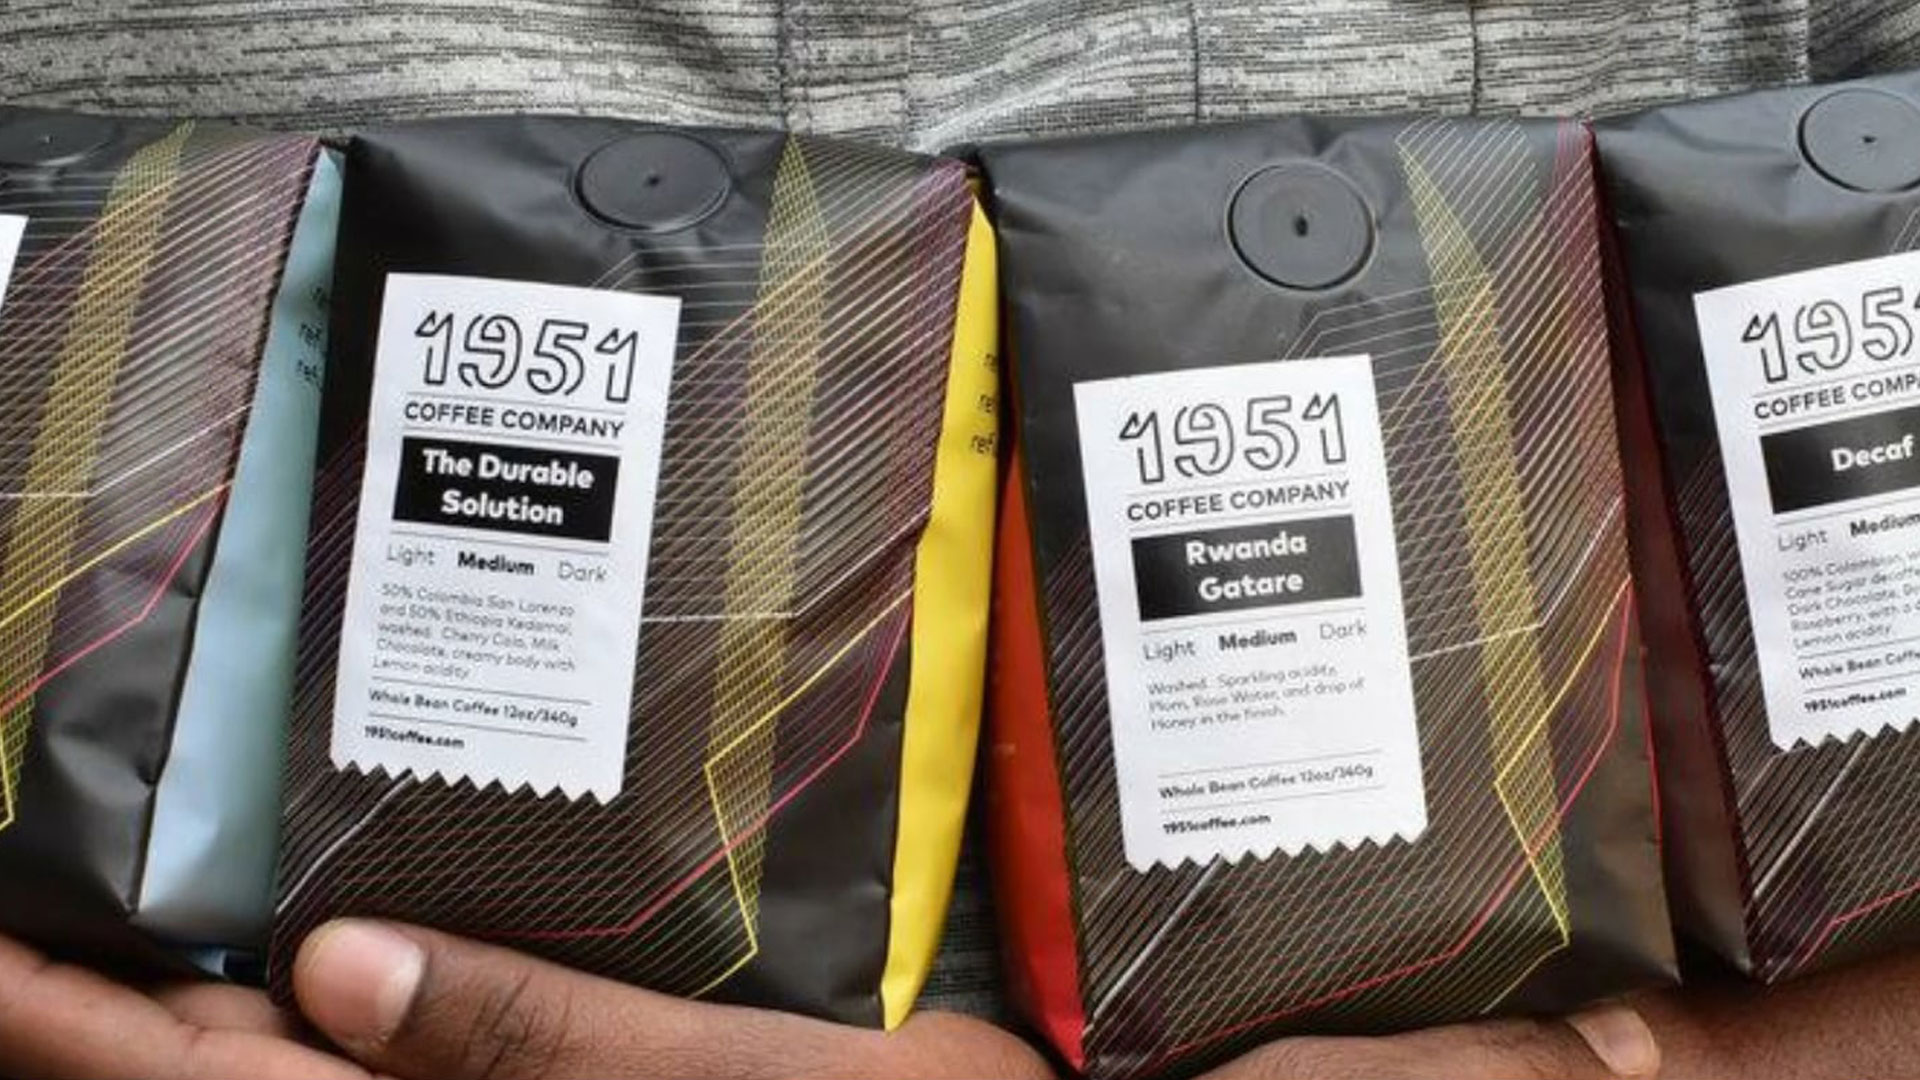 Supporting Refugees Through Specialty Coffee